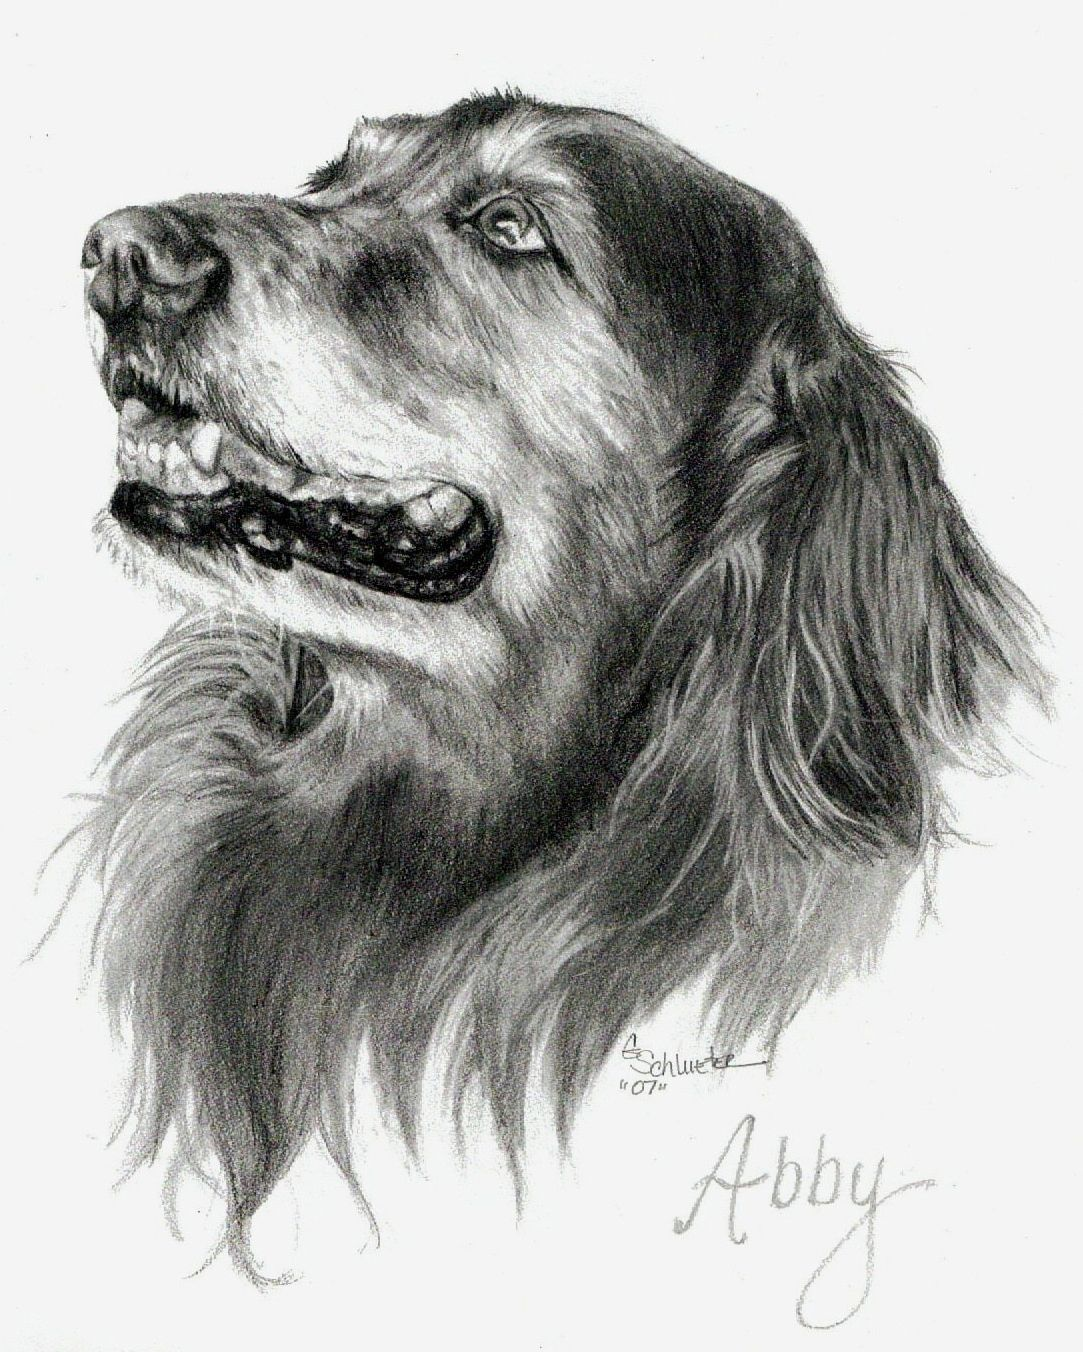 Dog Art, Pet Art, Pet Portraits, Dog Portraits Abby the Golden Retriever Sketch. #Pet Portraits by artist Genevieve Schlueter. Have a custom piece of your dog. Visit http://www.gensart.net to learn how. Great gift idea for a birthday, Xmas or special occasion.